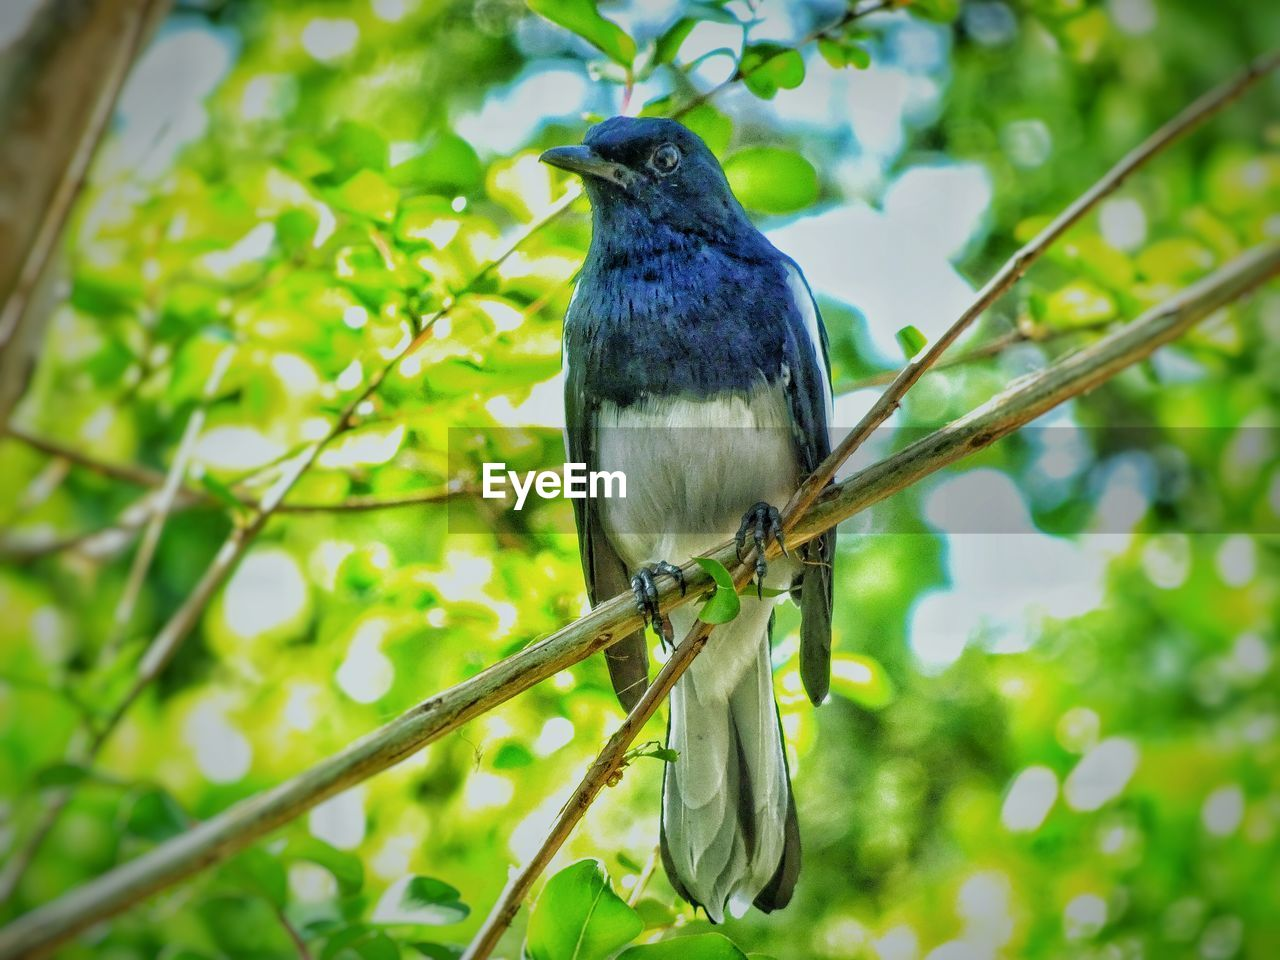 animal, animal themes, one animal, animal wildlife, vertebrate, animals in the wild, bird, perching, plant, focus on foreground, day, no people, tree, green color, branch, nature, outdoors, low angle view, close-up, growth, power supply